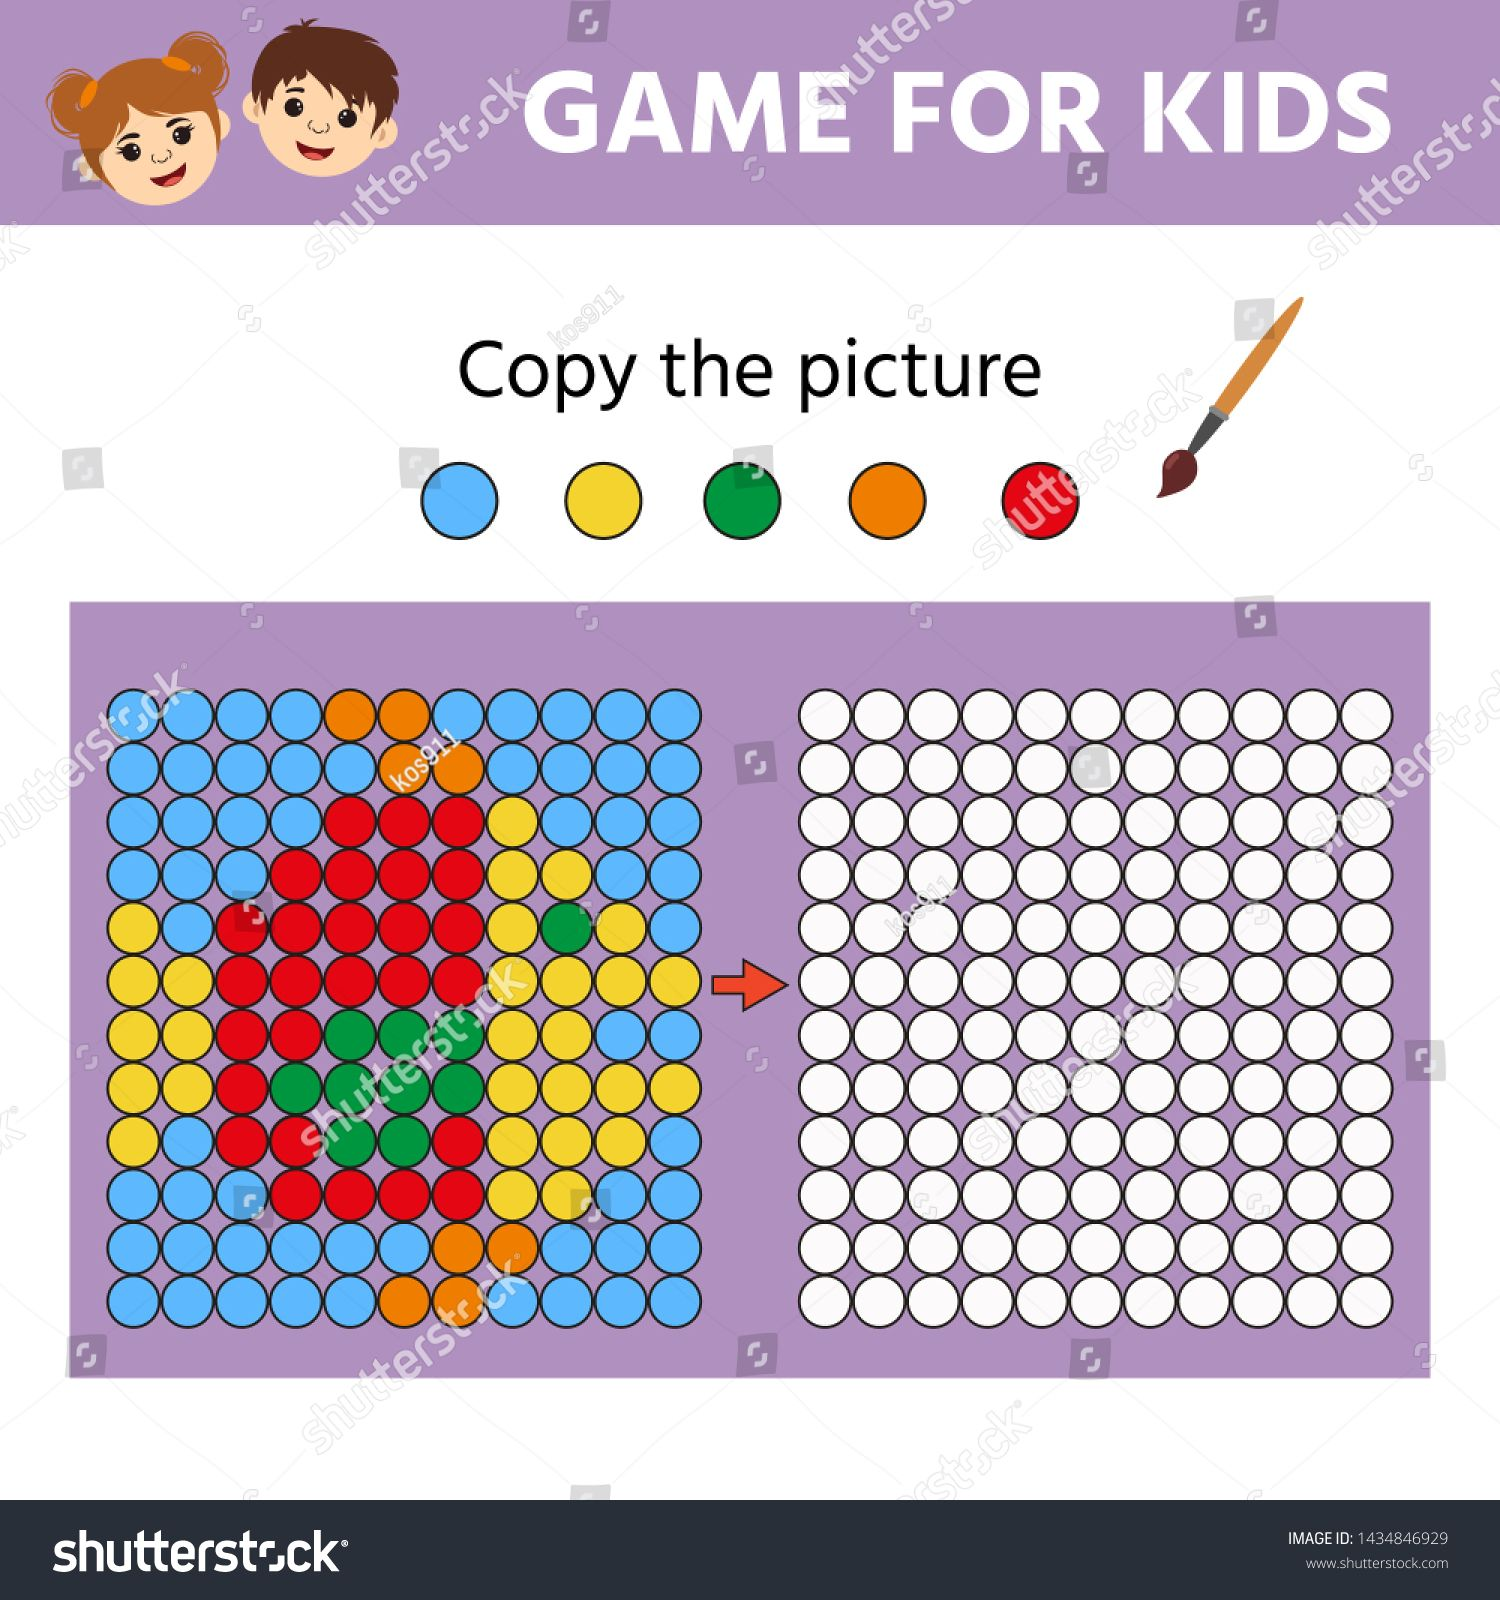 Puzzle Task Education Logic Game For Preschool Kids Paint The Circles Color By Example Drawing Printable Activity Le In 2020 Preschool Games Logic Games Education